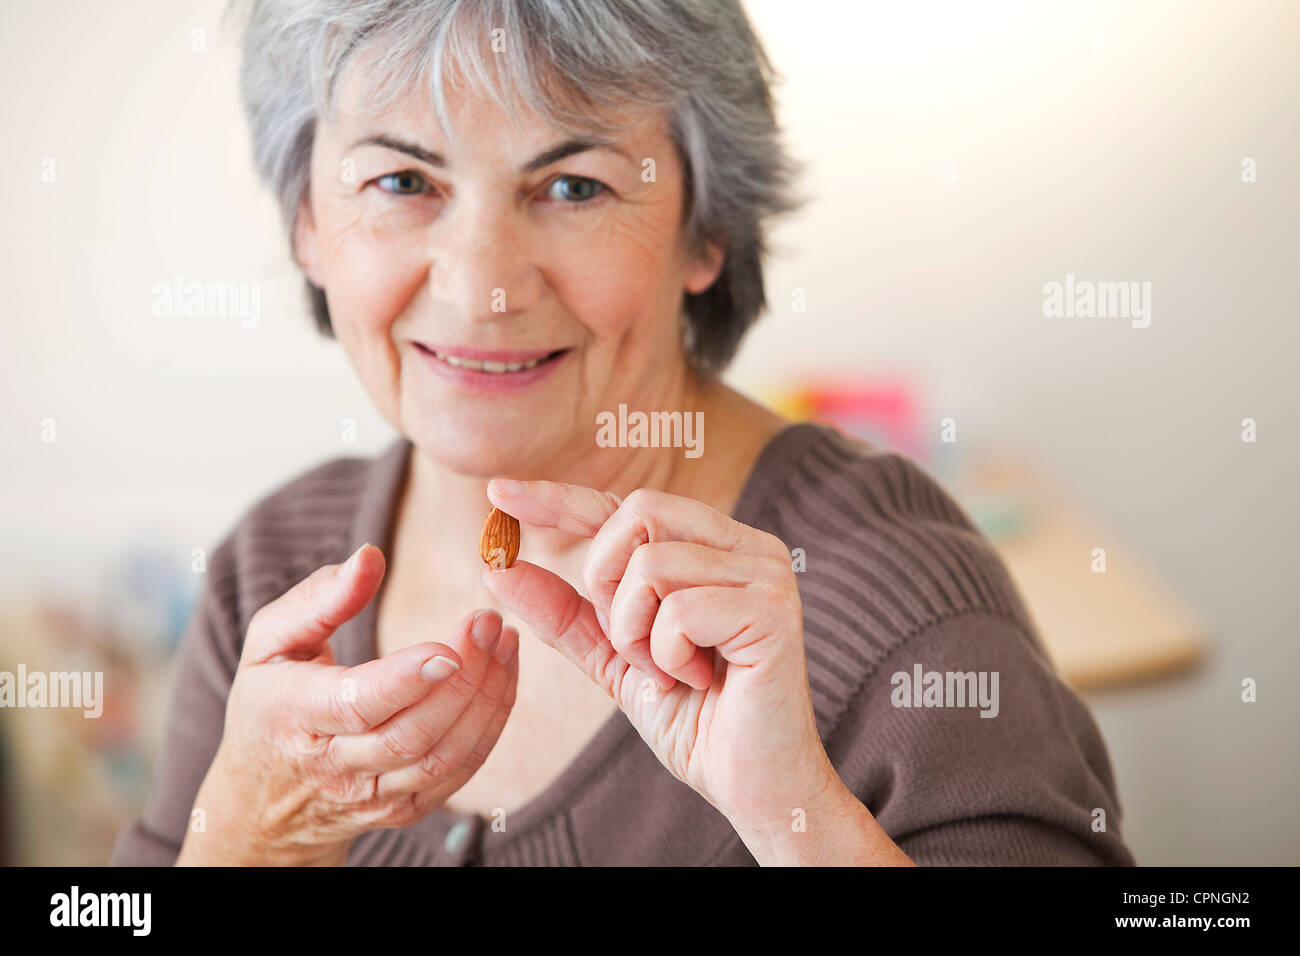 ELDERLY PERSON EATING - Stock Image